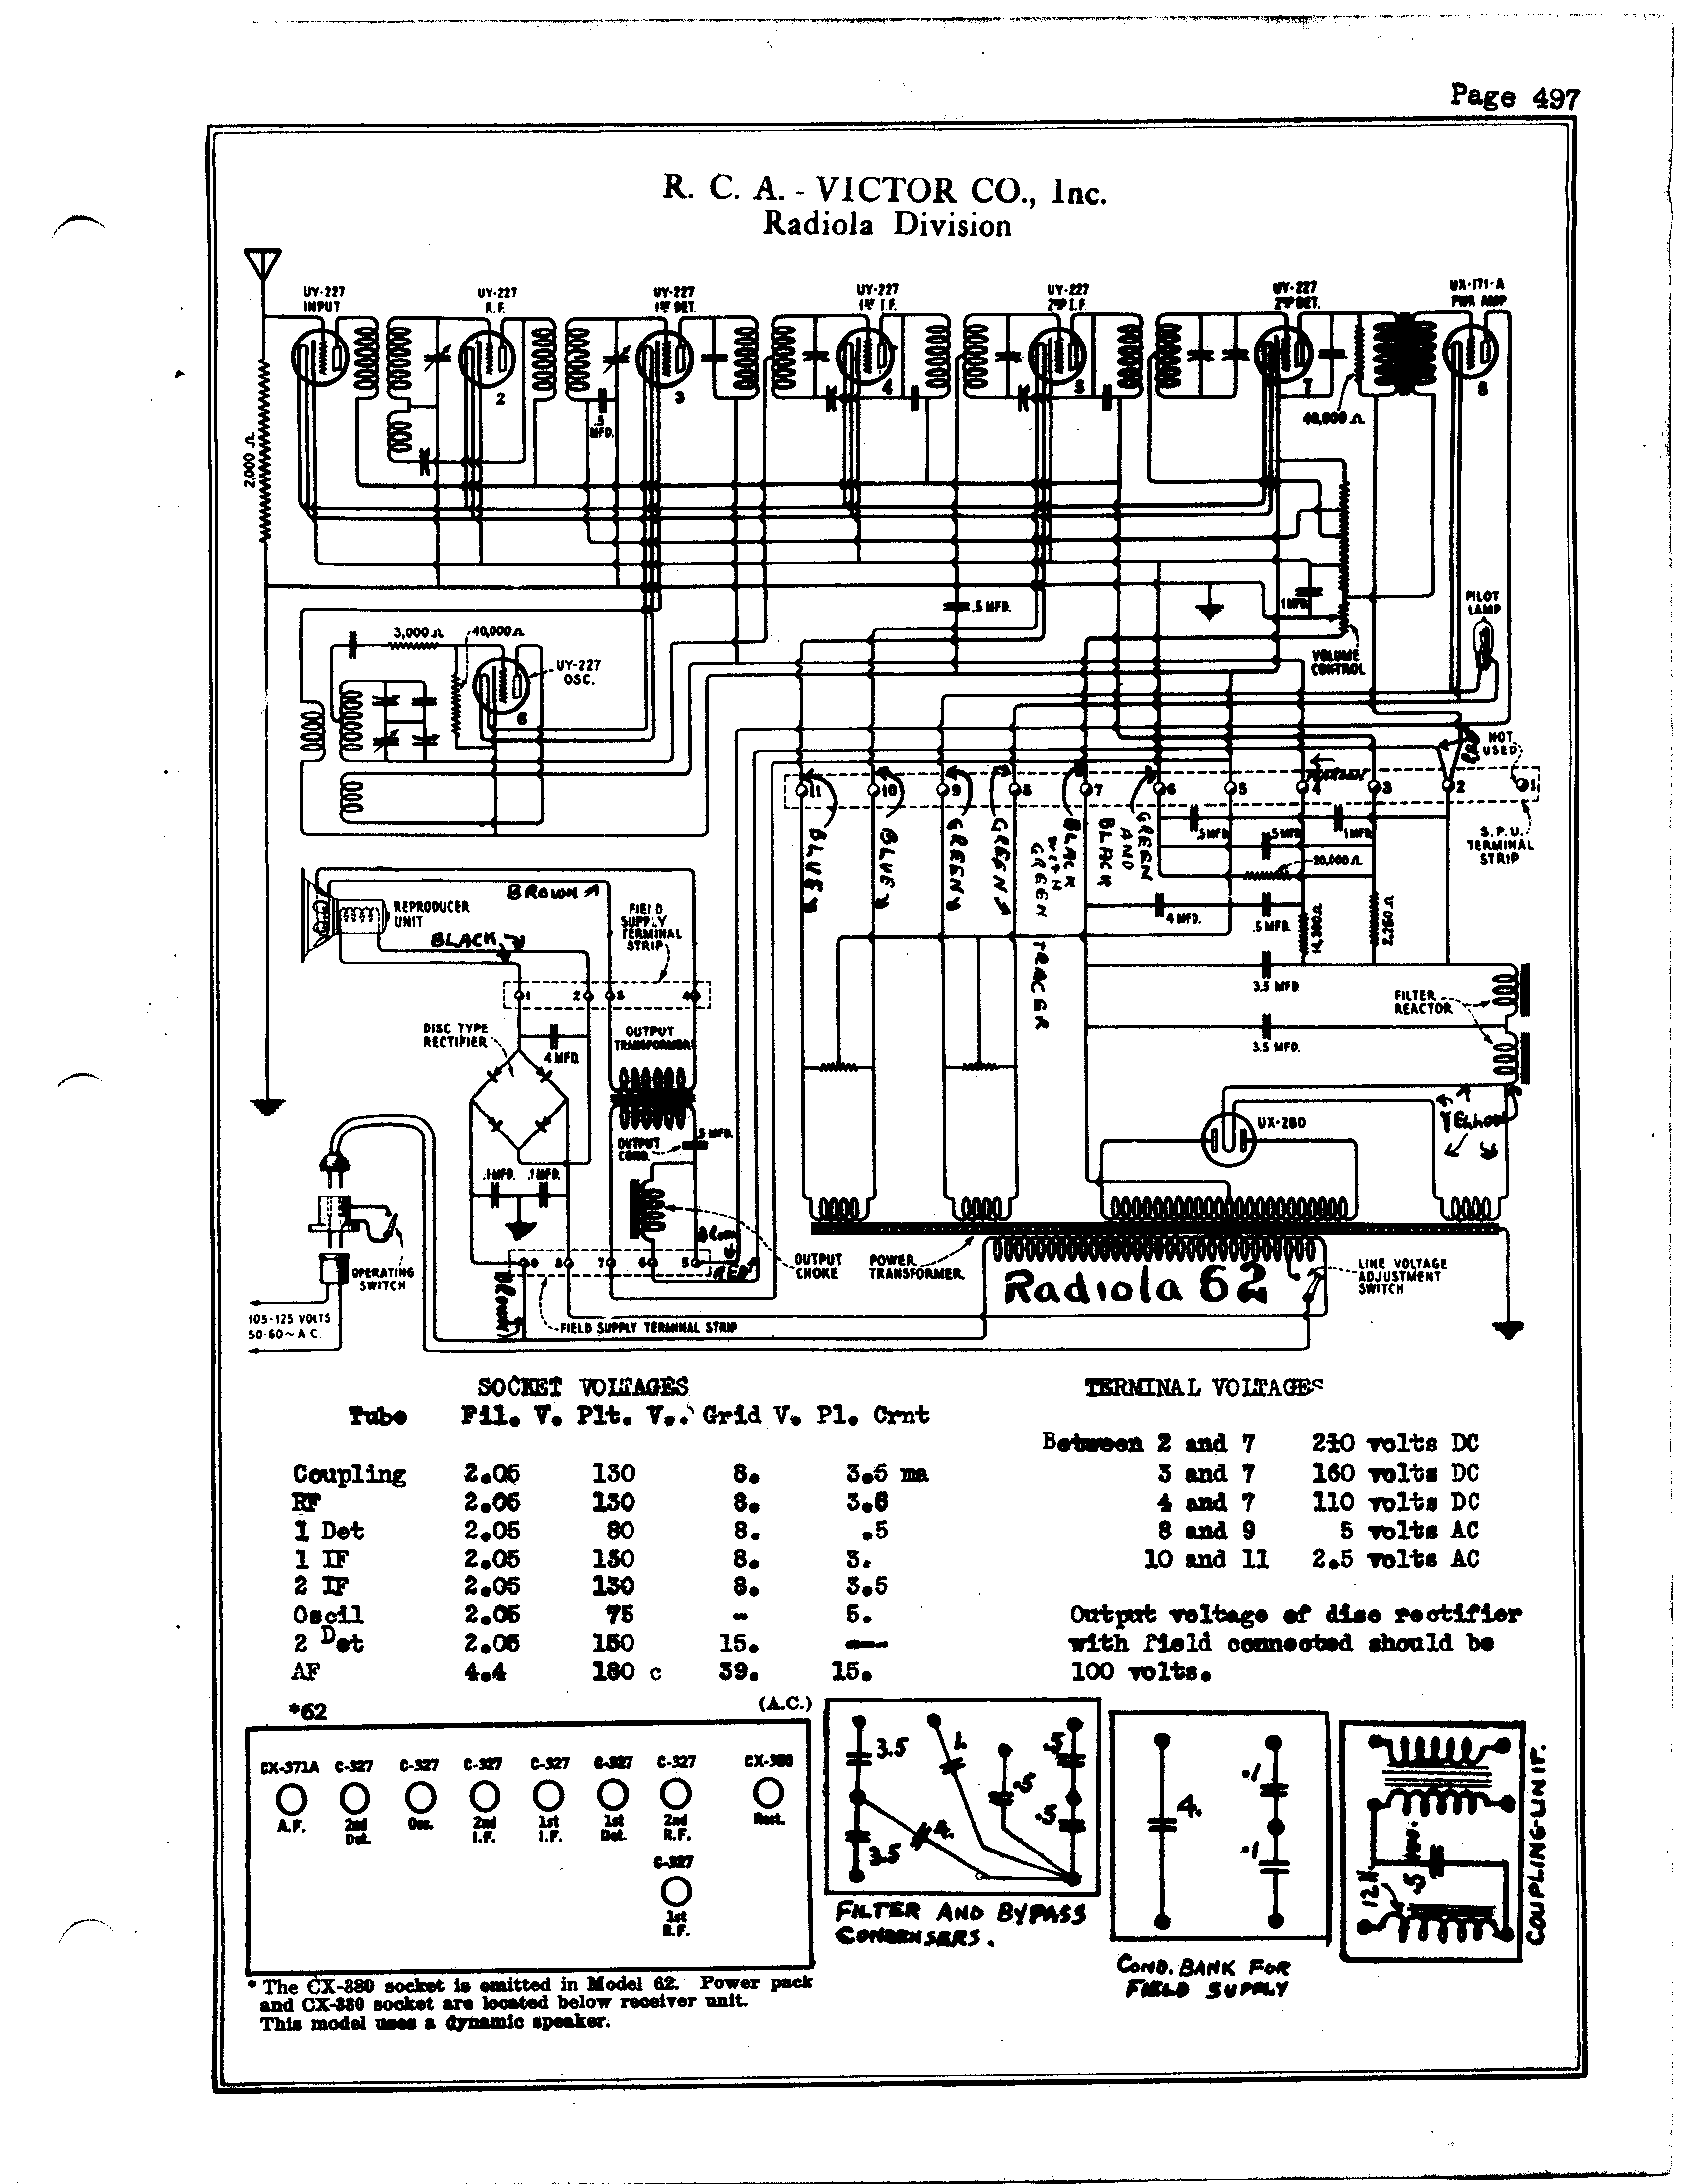 Graybar Electric Co. 330(RCA) | Antique Electronic Supply on synthesizer schematics, antique radio schematics, zenith schematics, 4cx1500b amplifier schematics, whirlpool schematics, tube audio amplifier schematics, otl amplifier schematics, yamaha schematics, usb schematics, kitchenaid schematics, radio shack schematics, magnavox schematics, bose schematics,